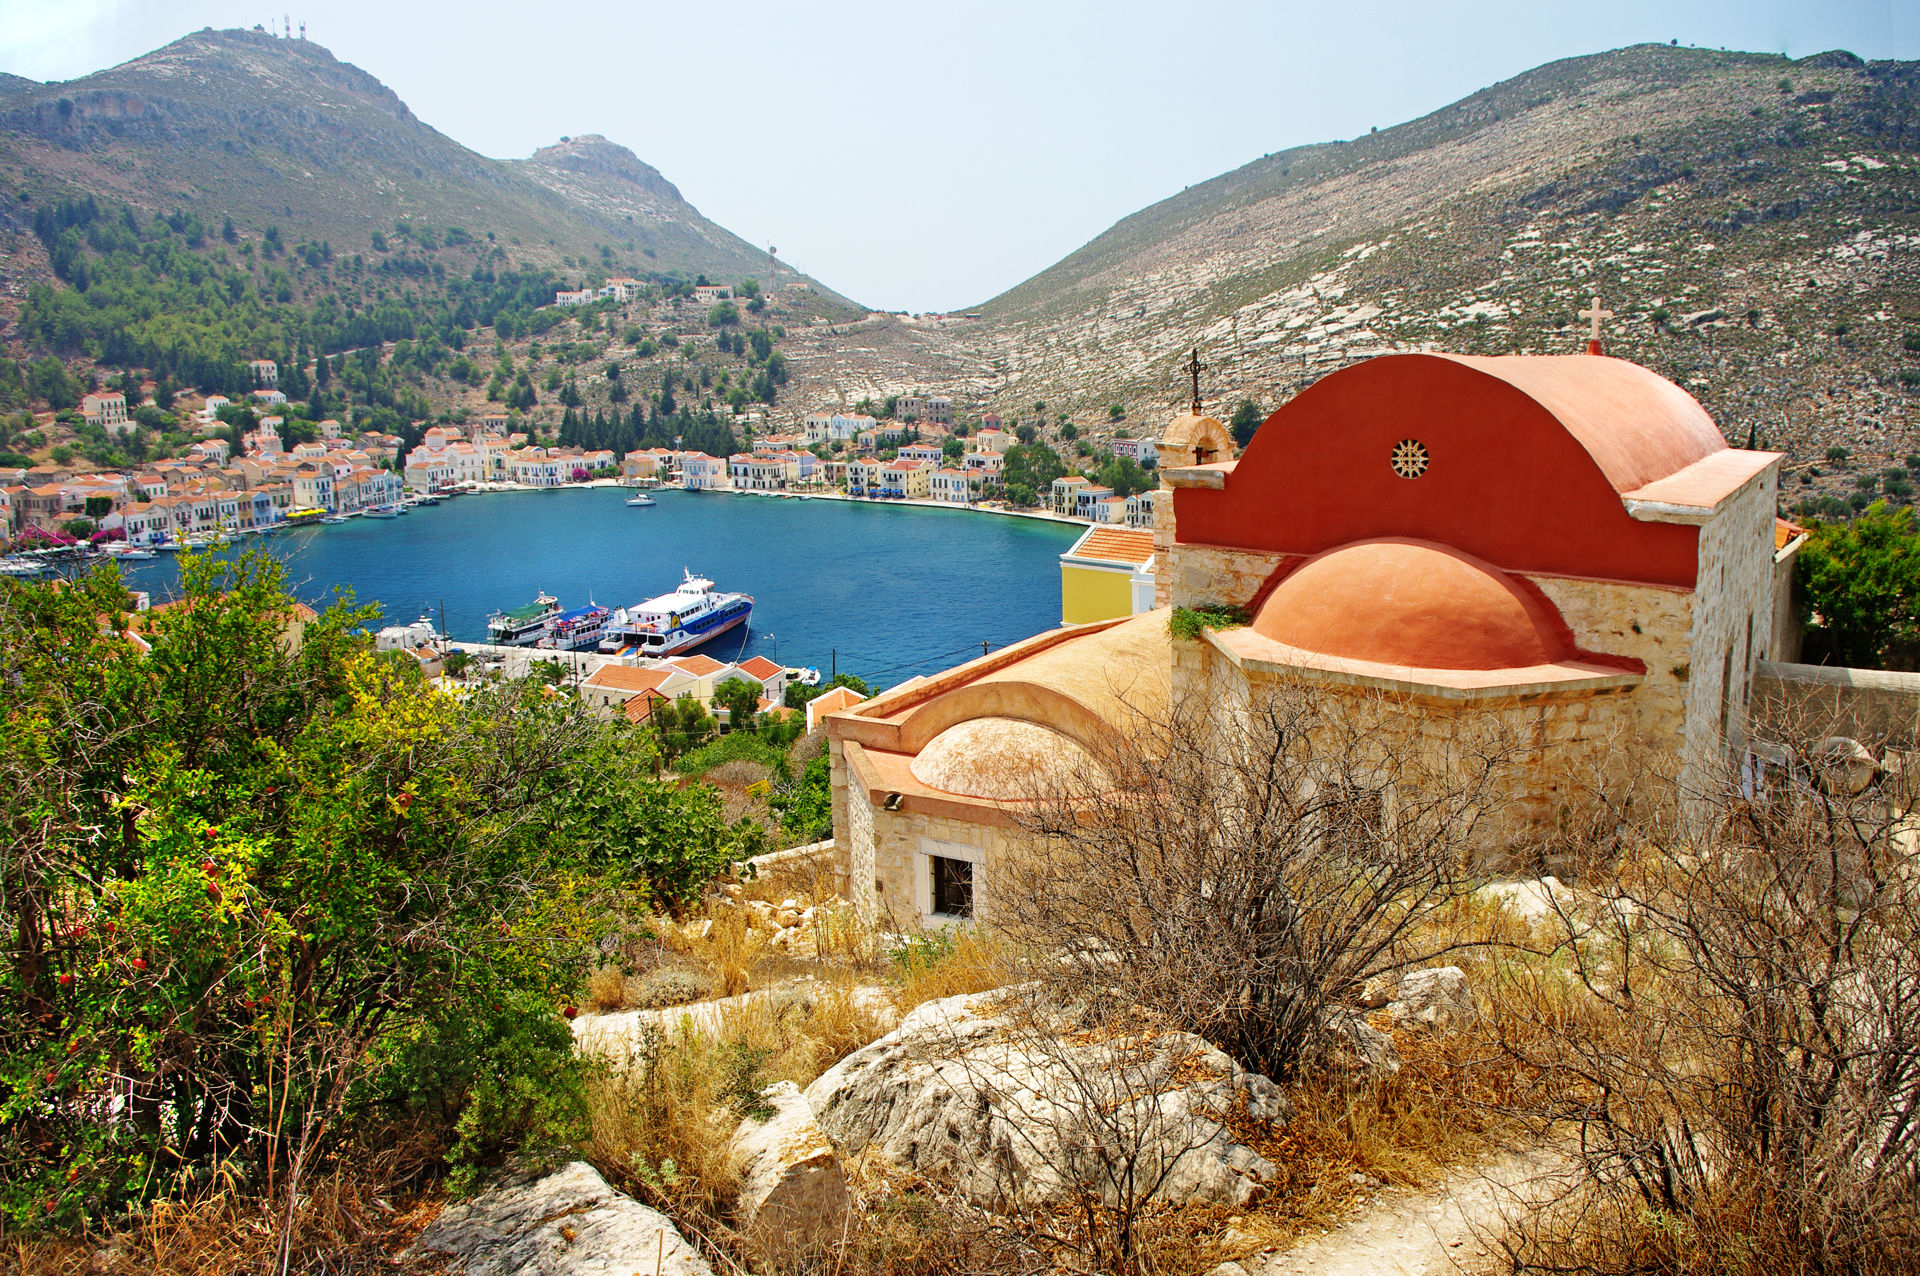 Kastelorizo with beautiful view of bay and church